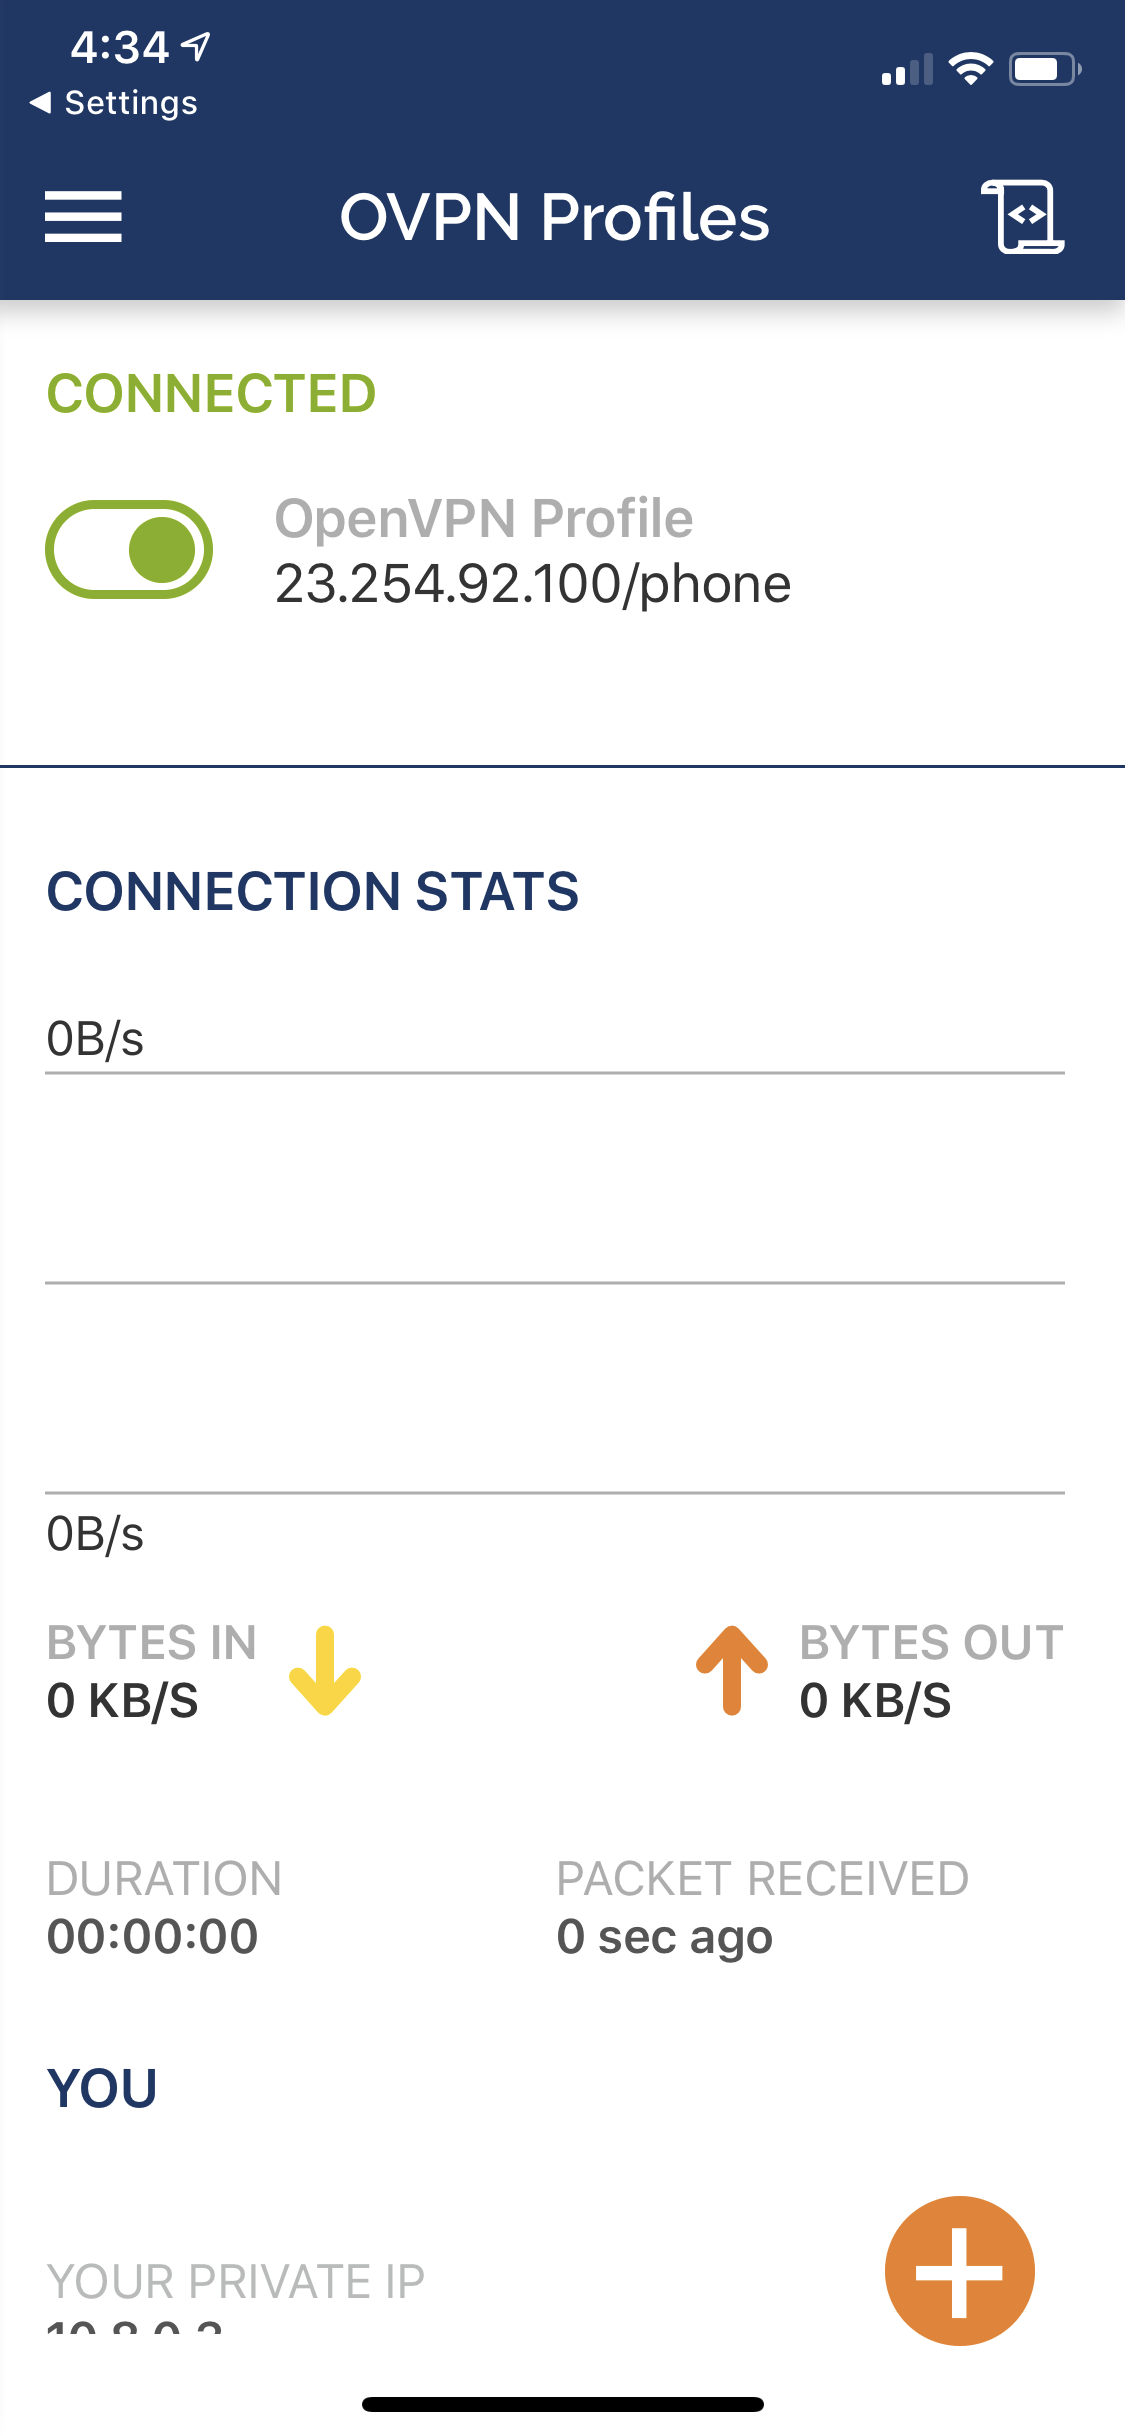 OpenVPN profile connection stats